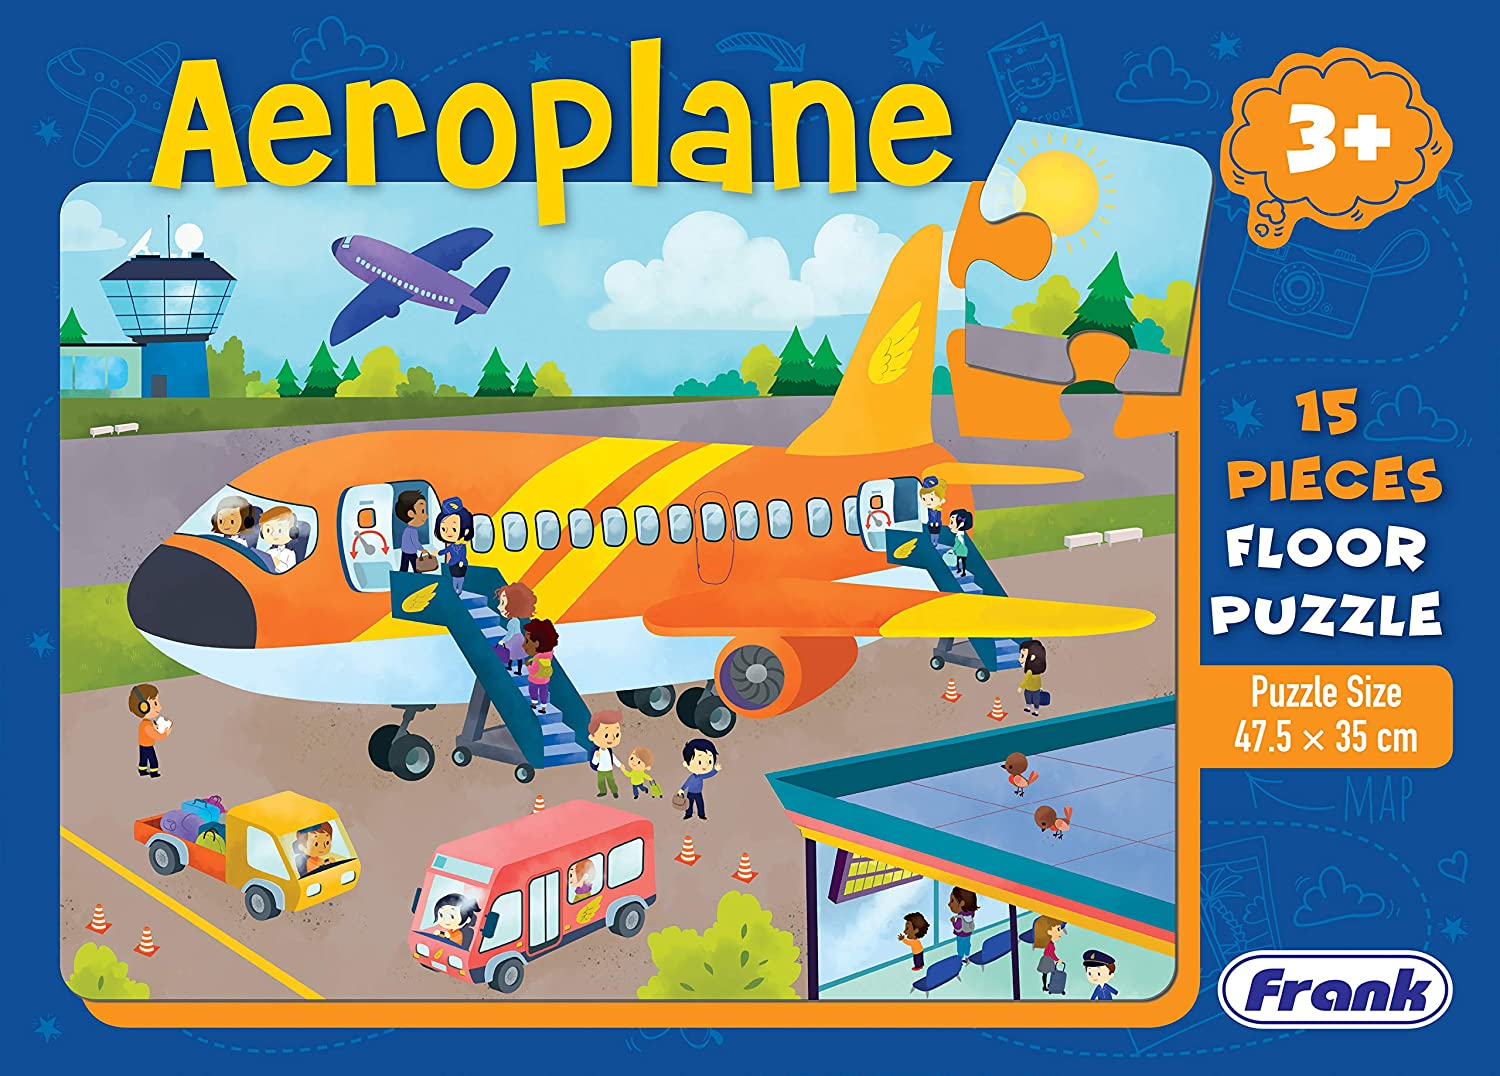 Frank Aeroplane 15 Pieces Floor Puzzle OFFer for Seattle Mall and 3 A Year Kids Old